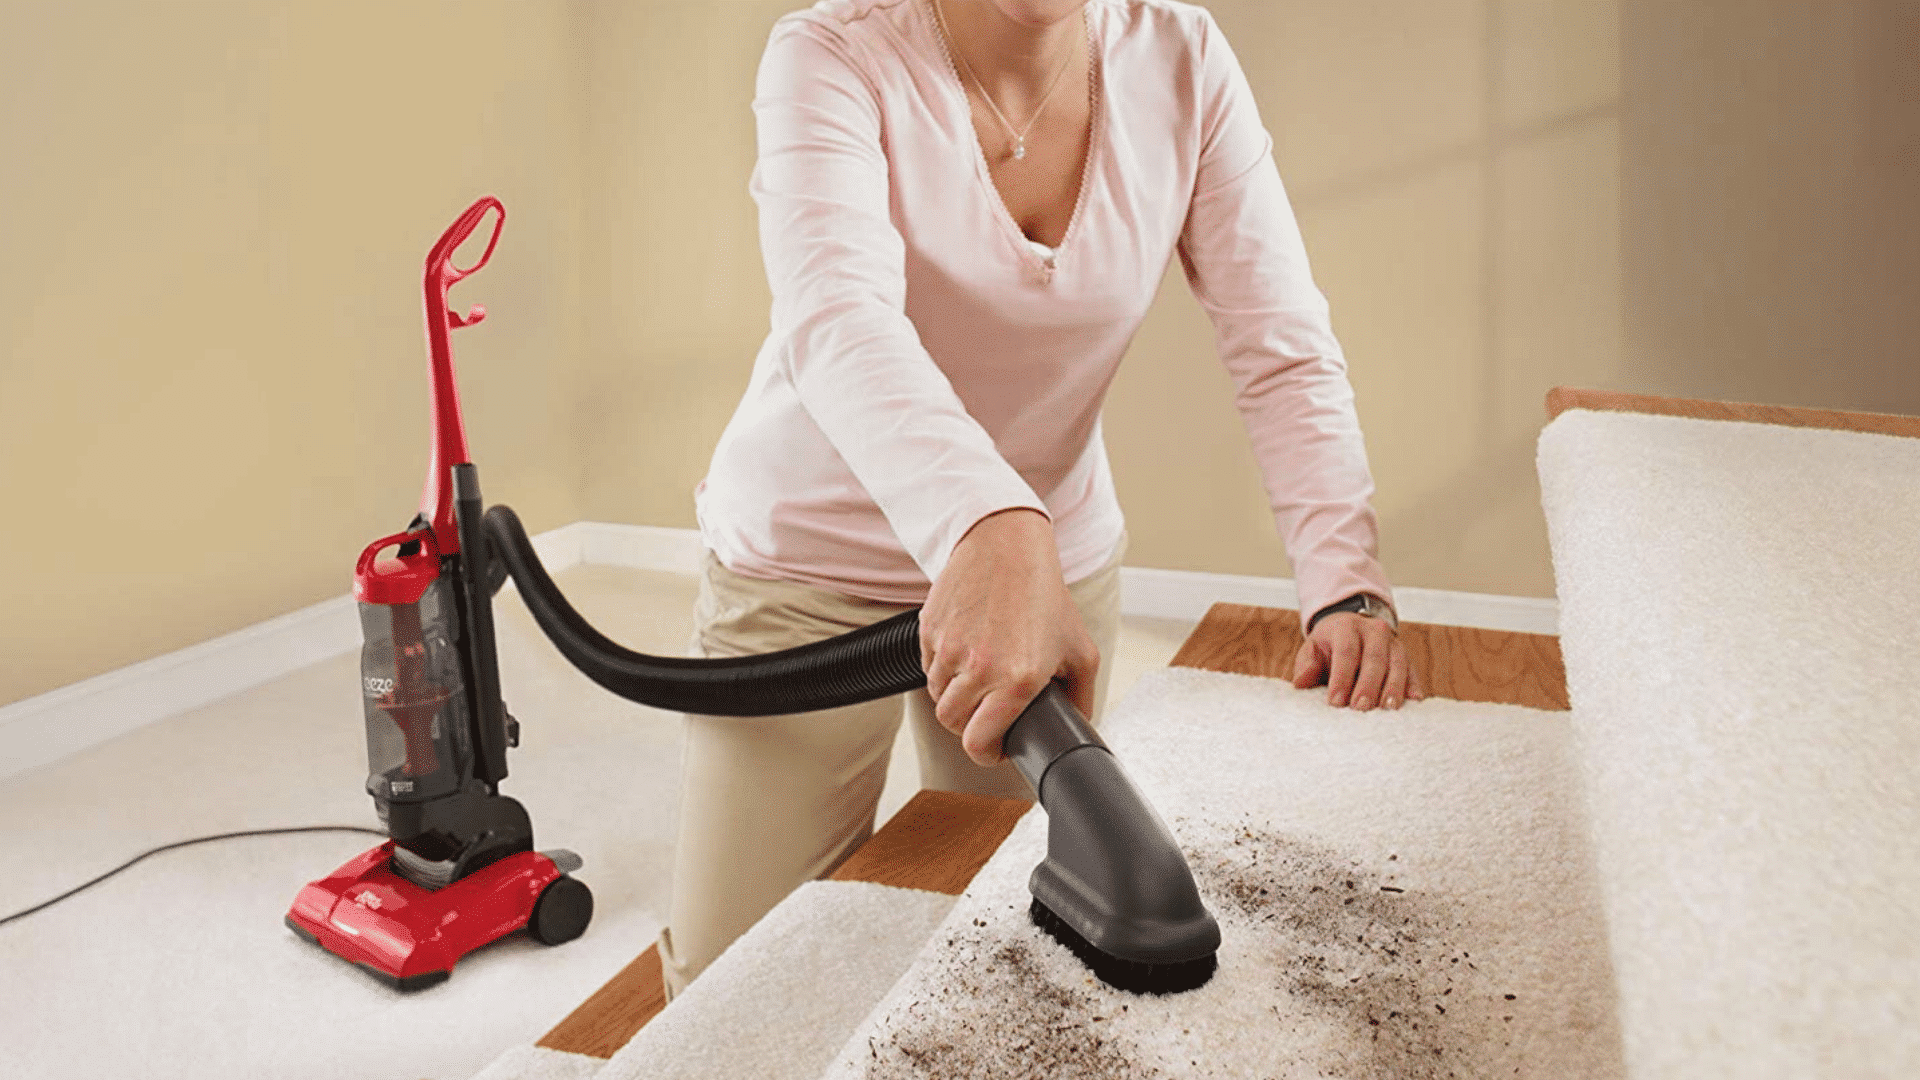 picture of Dirt Devil Vacuum Cleaner Breeze Cyclonic Corded Bagless Upright Vacuum UD70105 being used to clean carpet